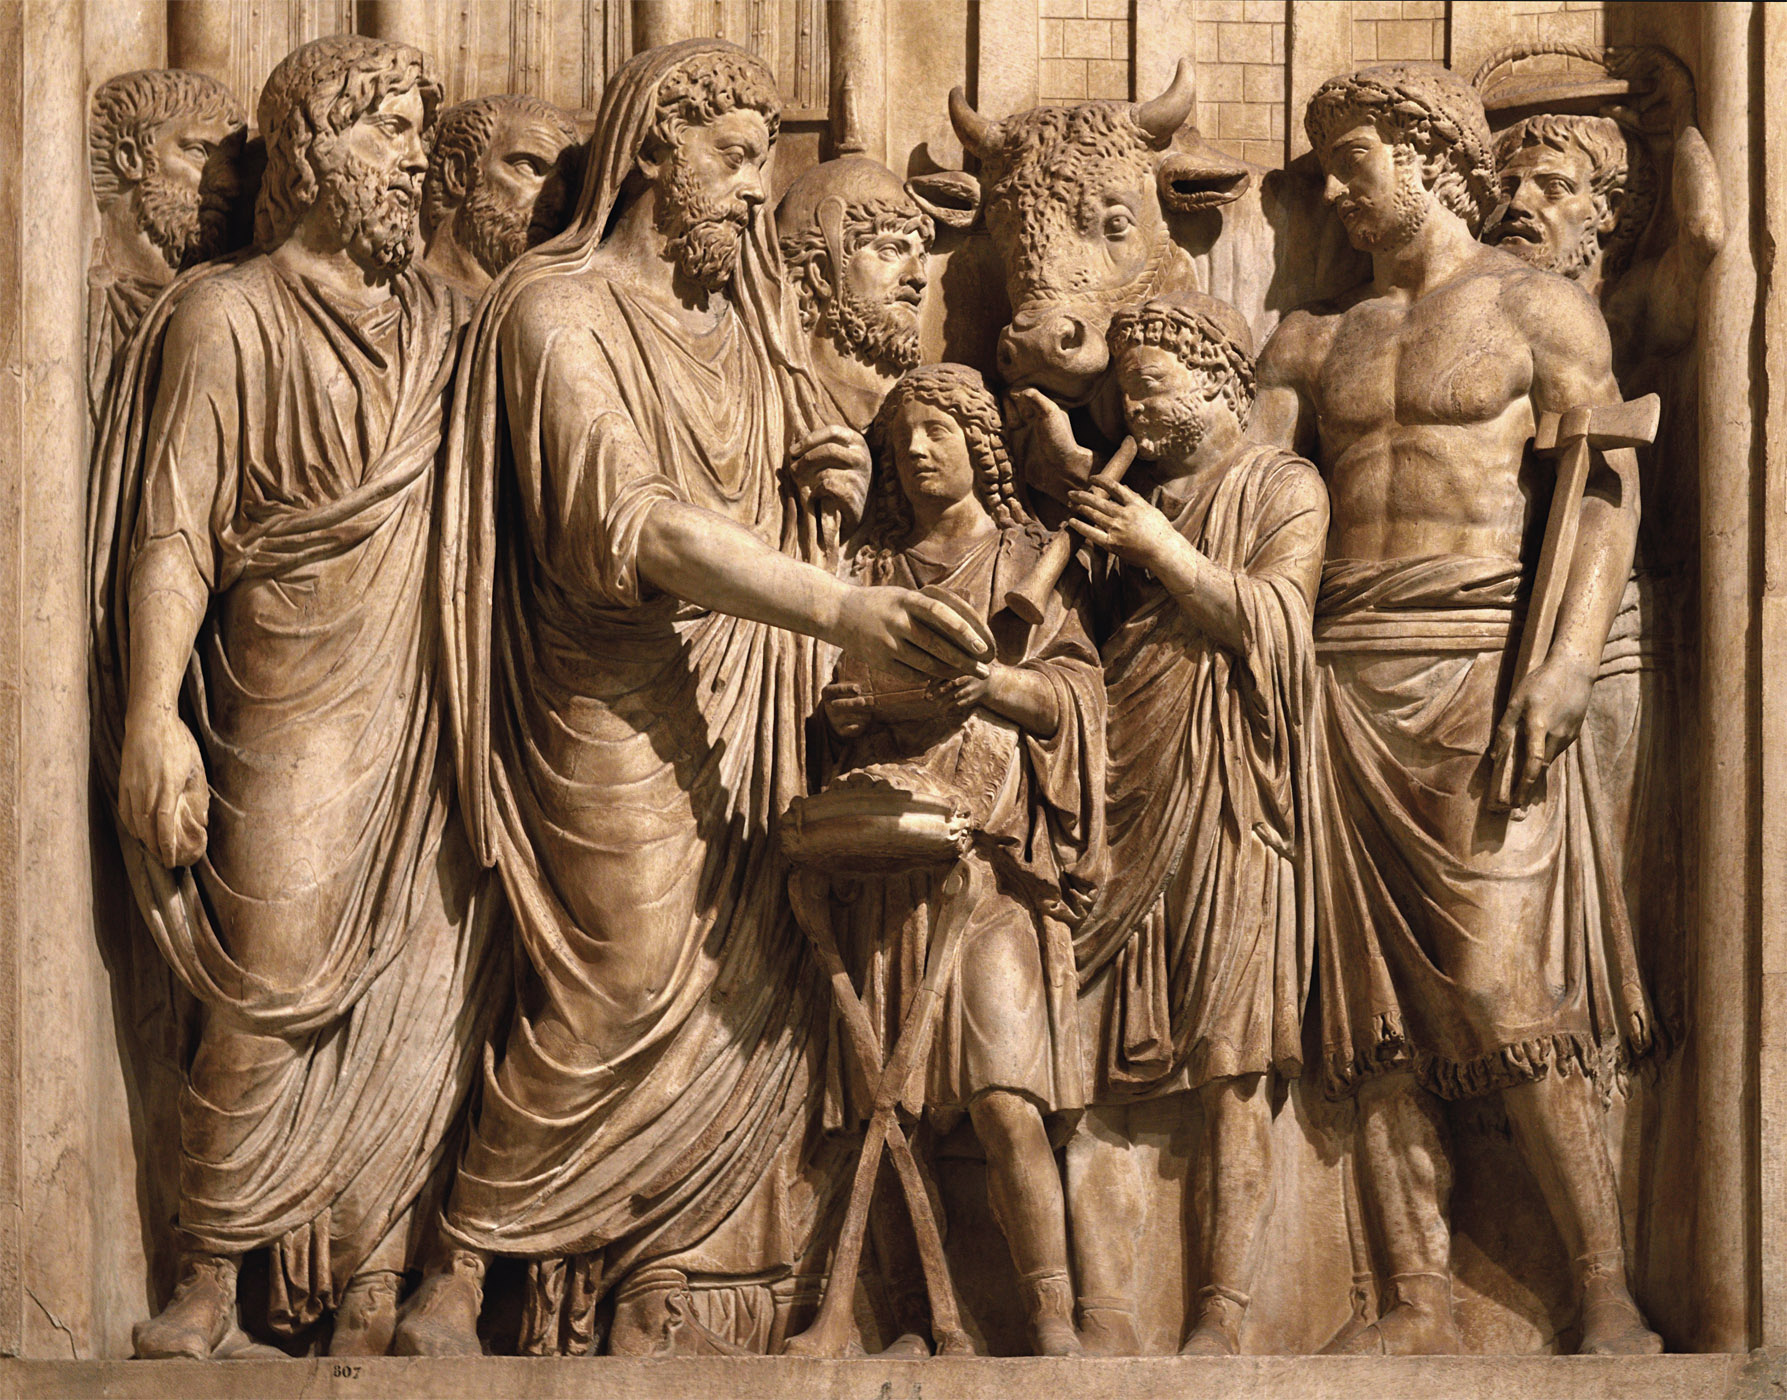 Sacrifice to Capitoline Jupiter (close-up). Relief panel from a triumphal arch (presumably). Marble. 177—180 CE.  Inv. No. MC 807. Инв. № MC 807. Rome, Capitoline Museums, Palazzo dei Conservatori, Main staircase